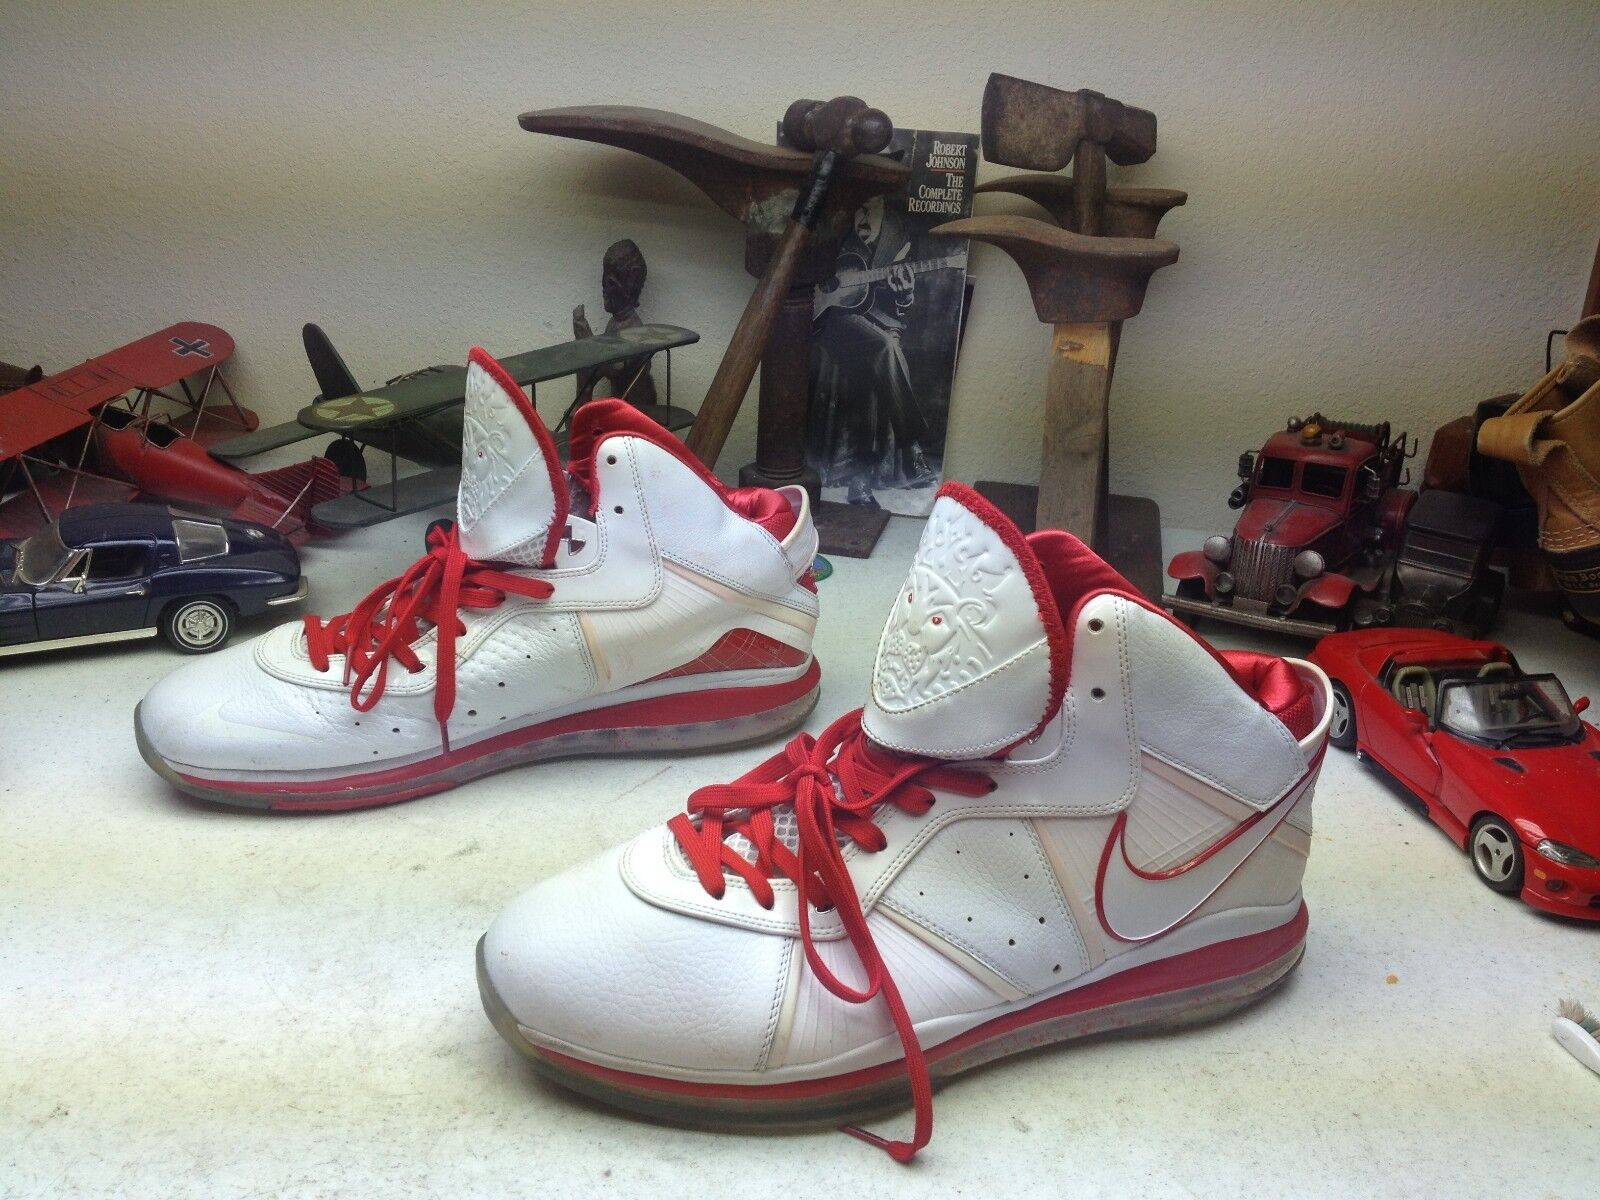 Nike LeBron James Basketball Blanco Rojo Leather Lace Up Athletic Basketball James Zapatillas 13W b0a11b